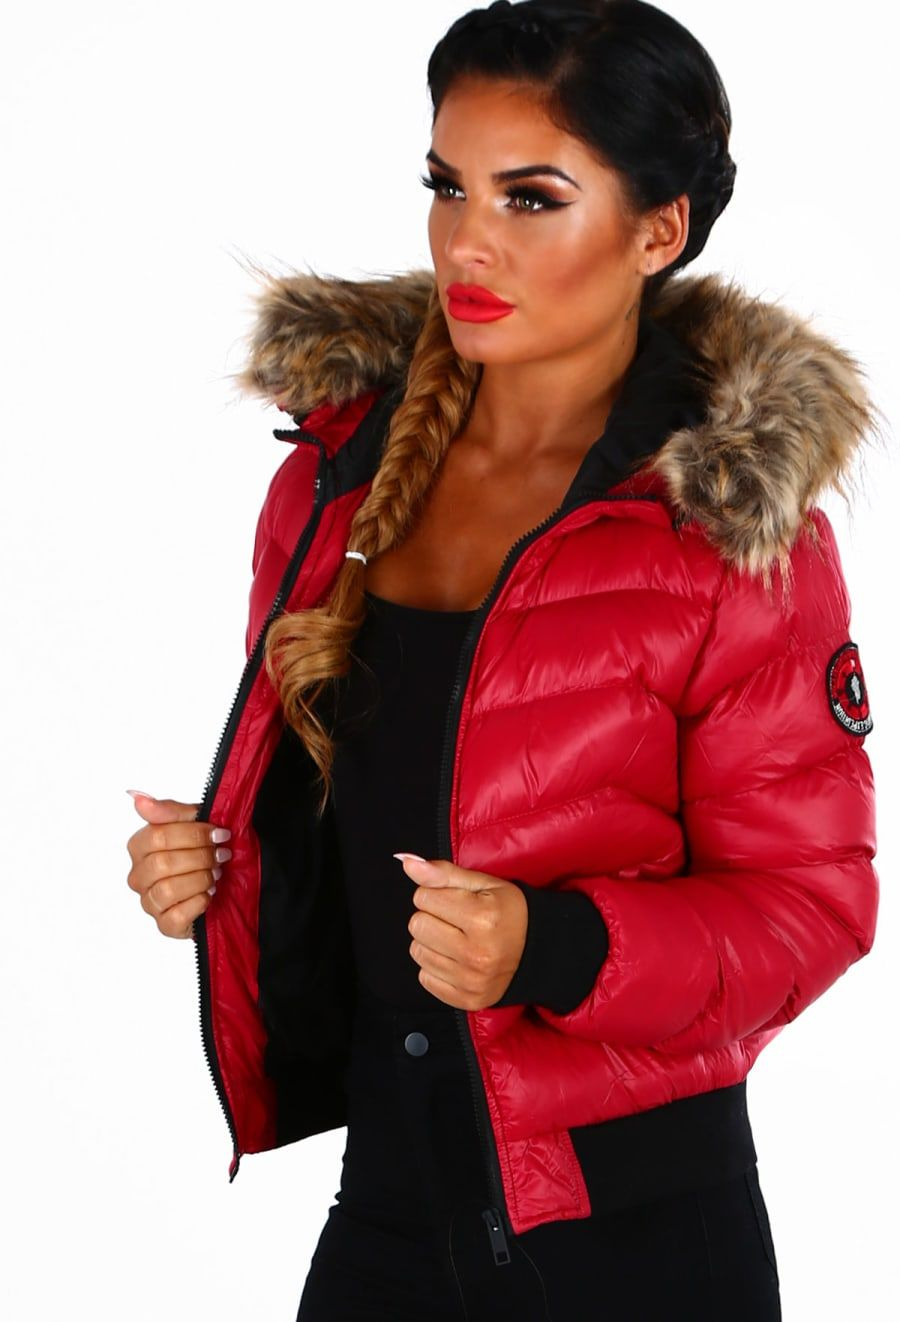 f41f34c866b9 Ice Bar Red Fur Trim Hooded Puffer Jacket - 8 | Blanket to go ...